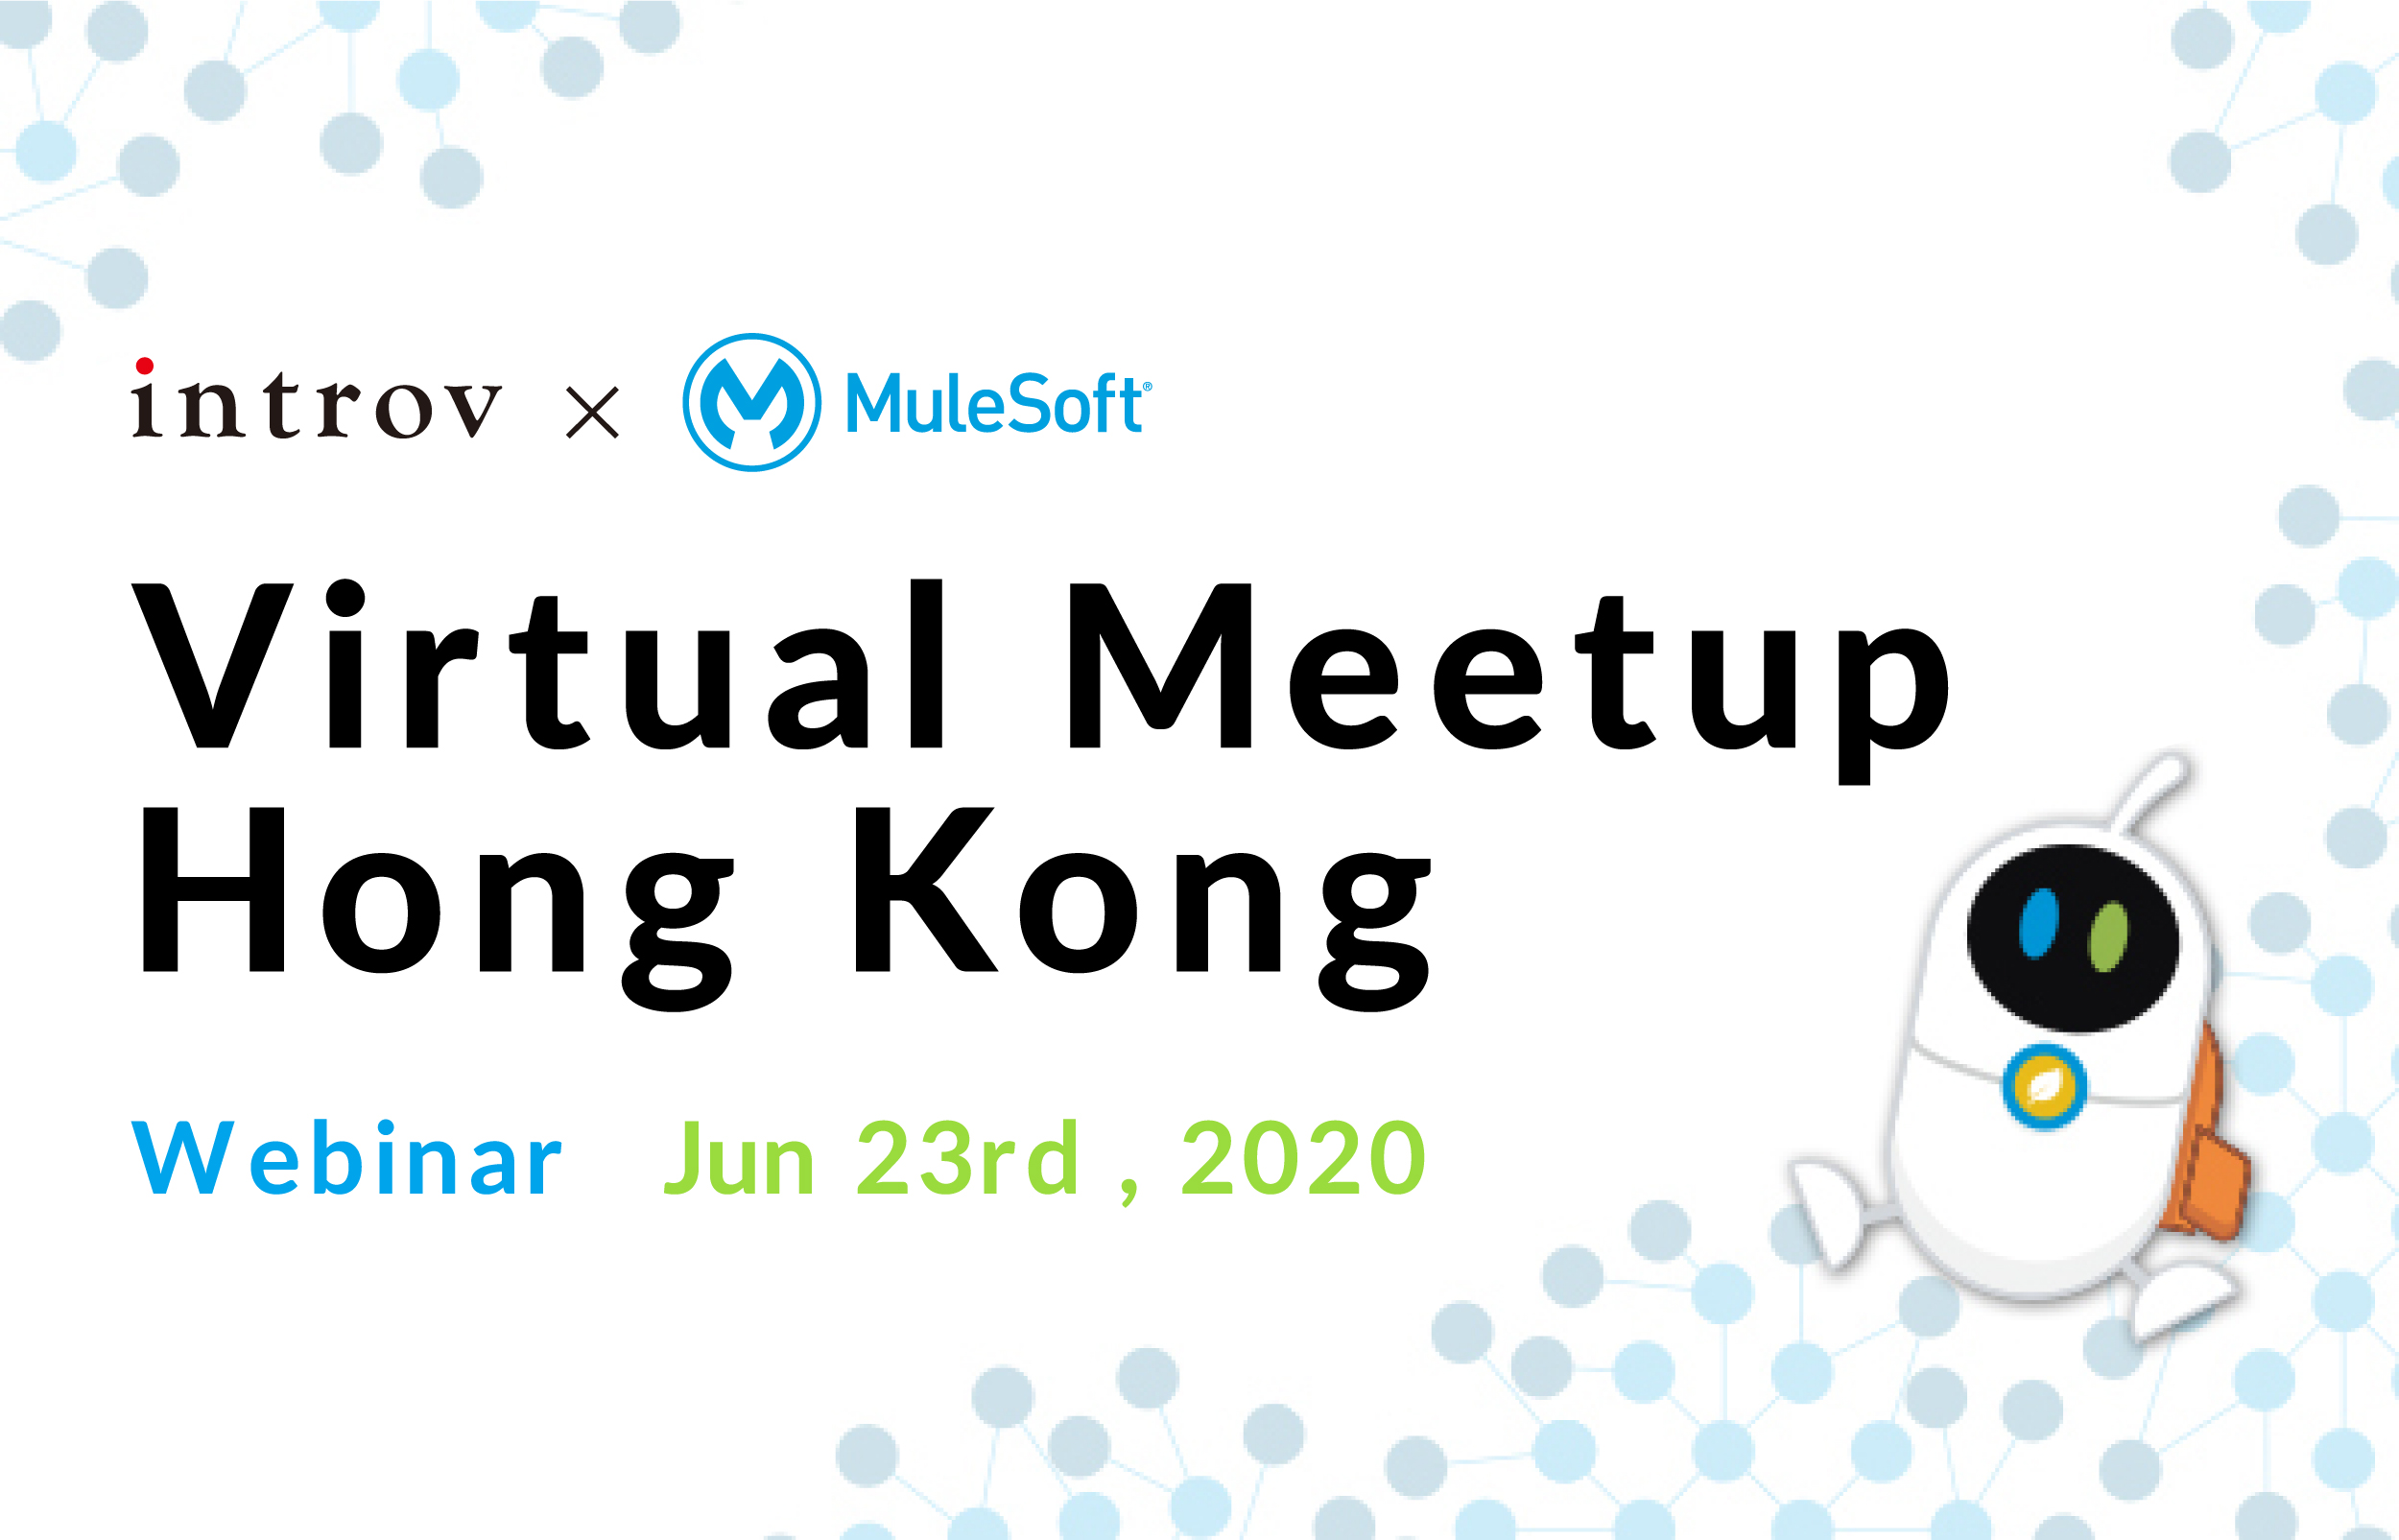 Webinar: MuleSoft Virtual Meetup Hong Kong of 2020 (June 23rd, 2020)